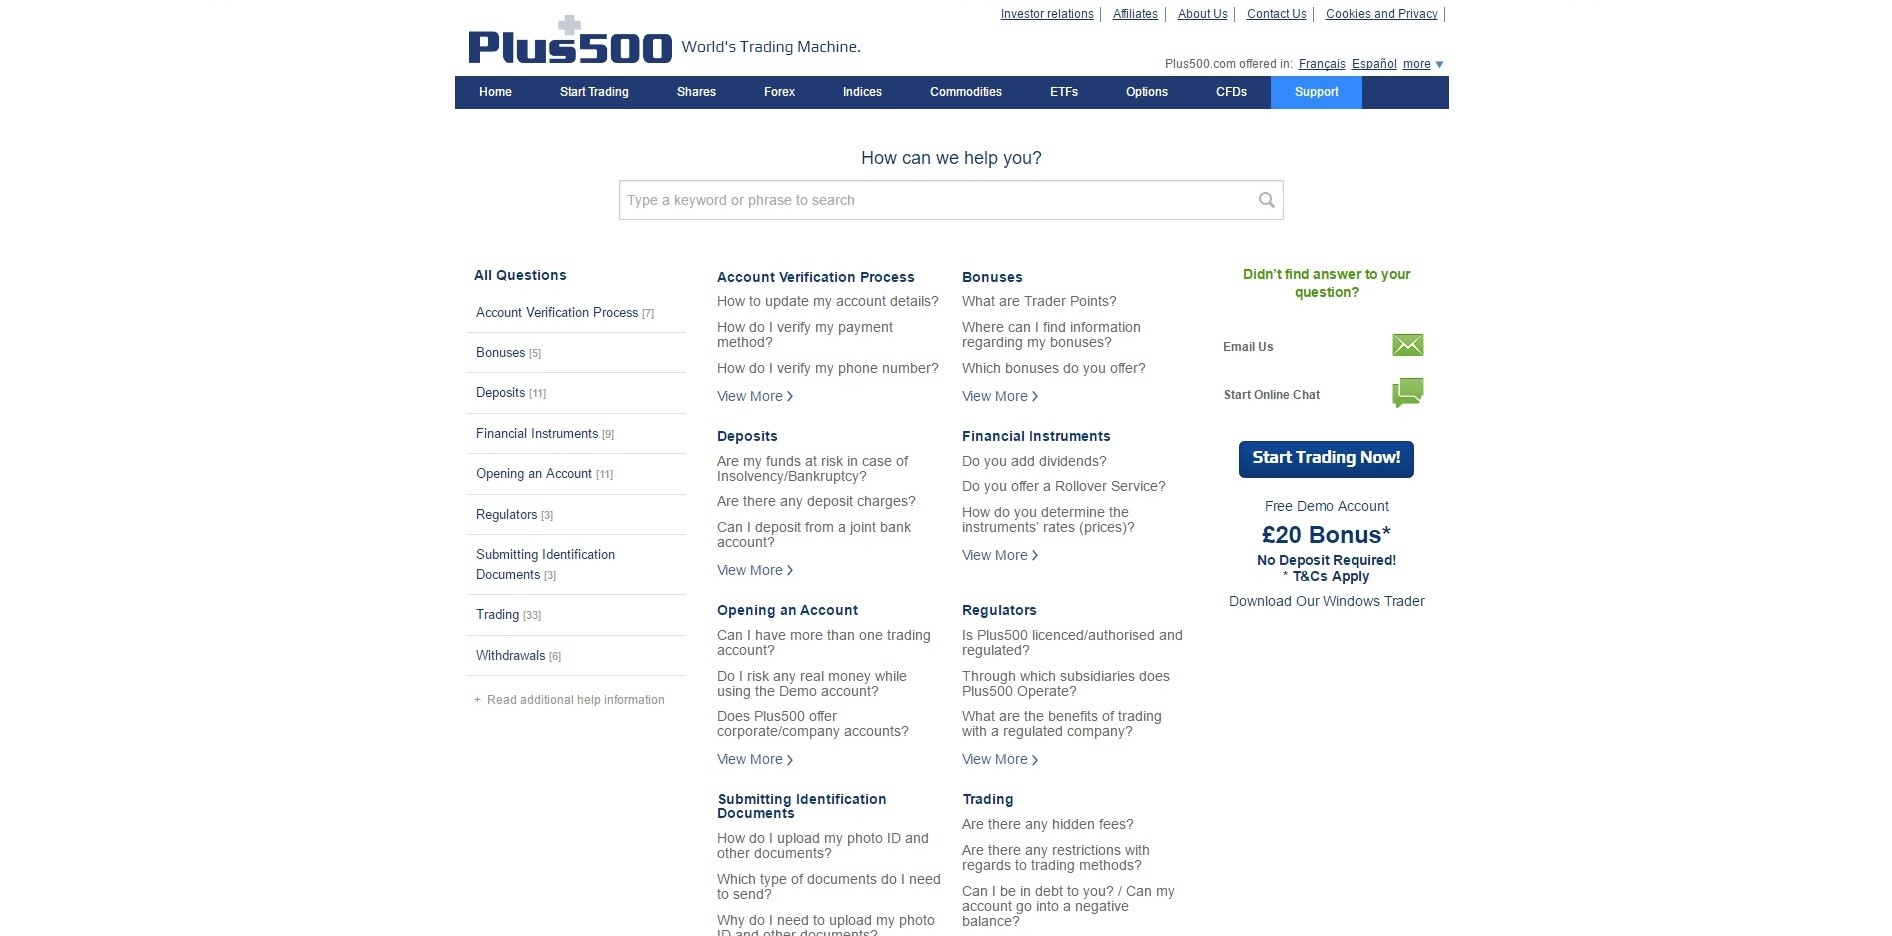 Plus500 Forex trading review